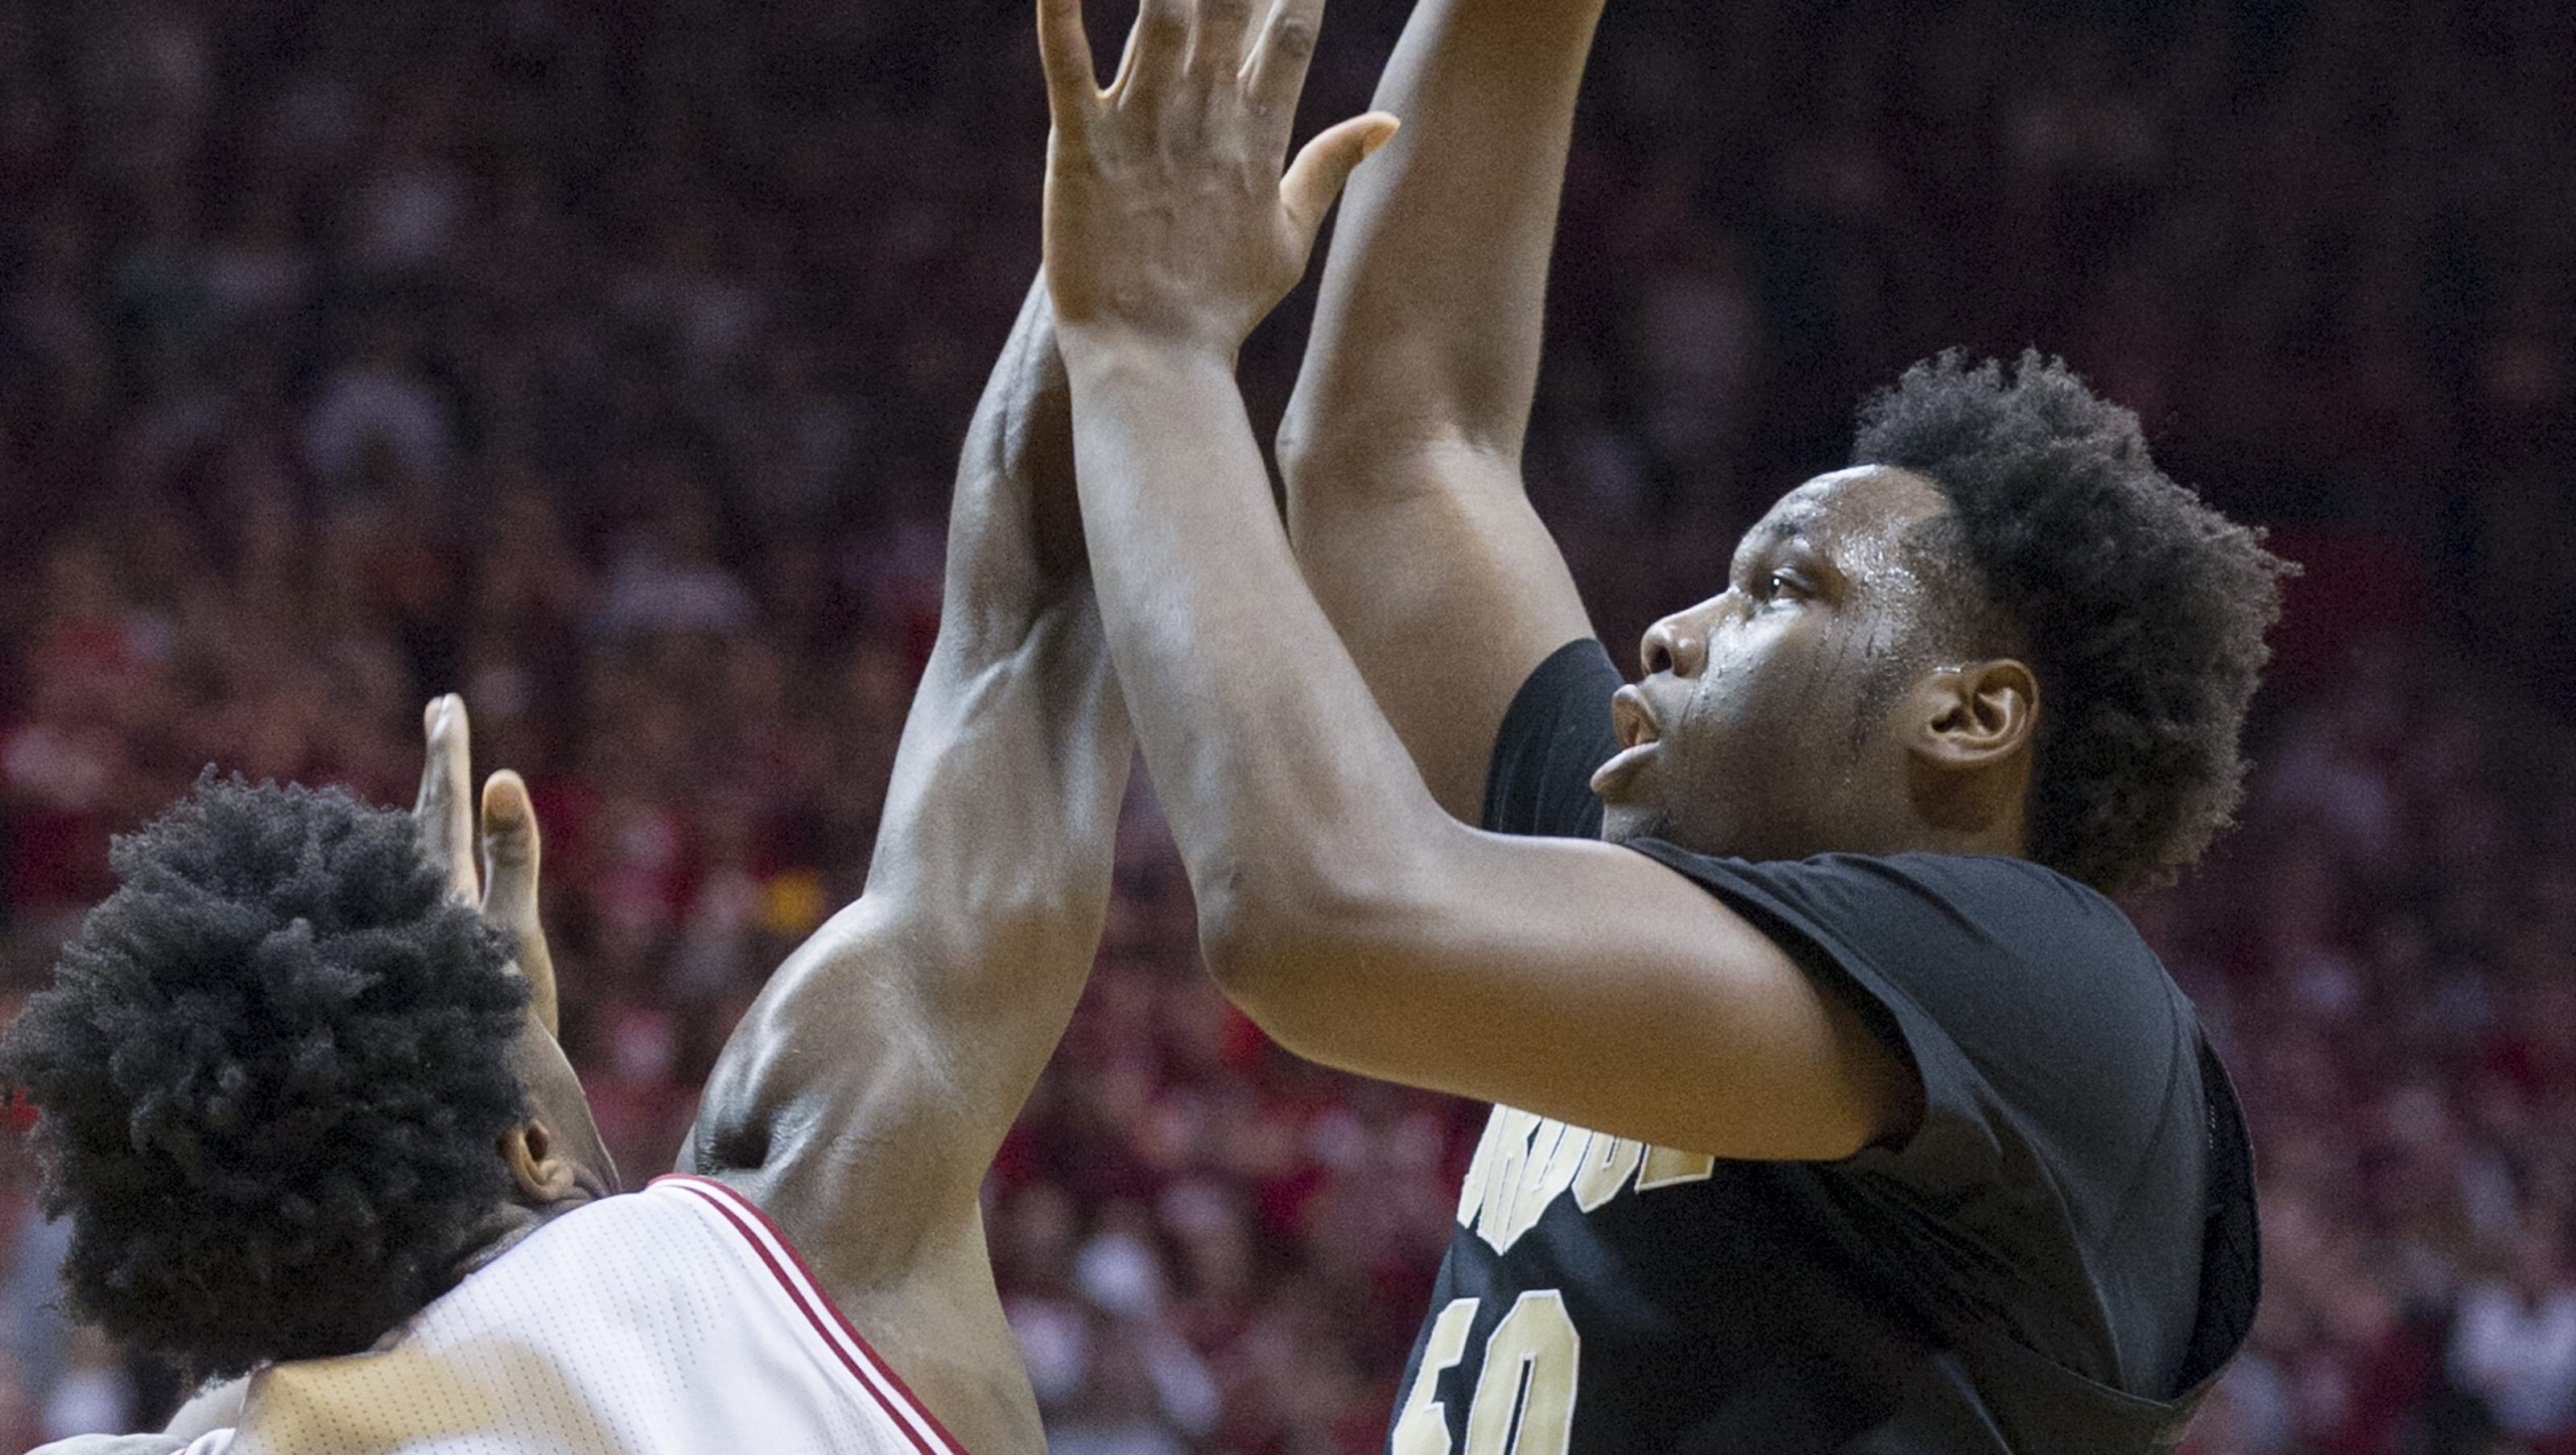 The Purdue Boilermakers basketball team is a college basketball program that competes in NCAA Division I and is a member of the Big Ten Conference